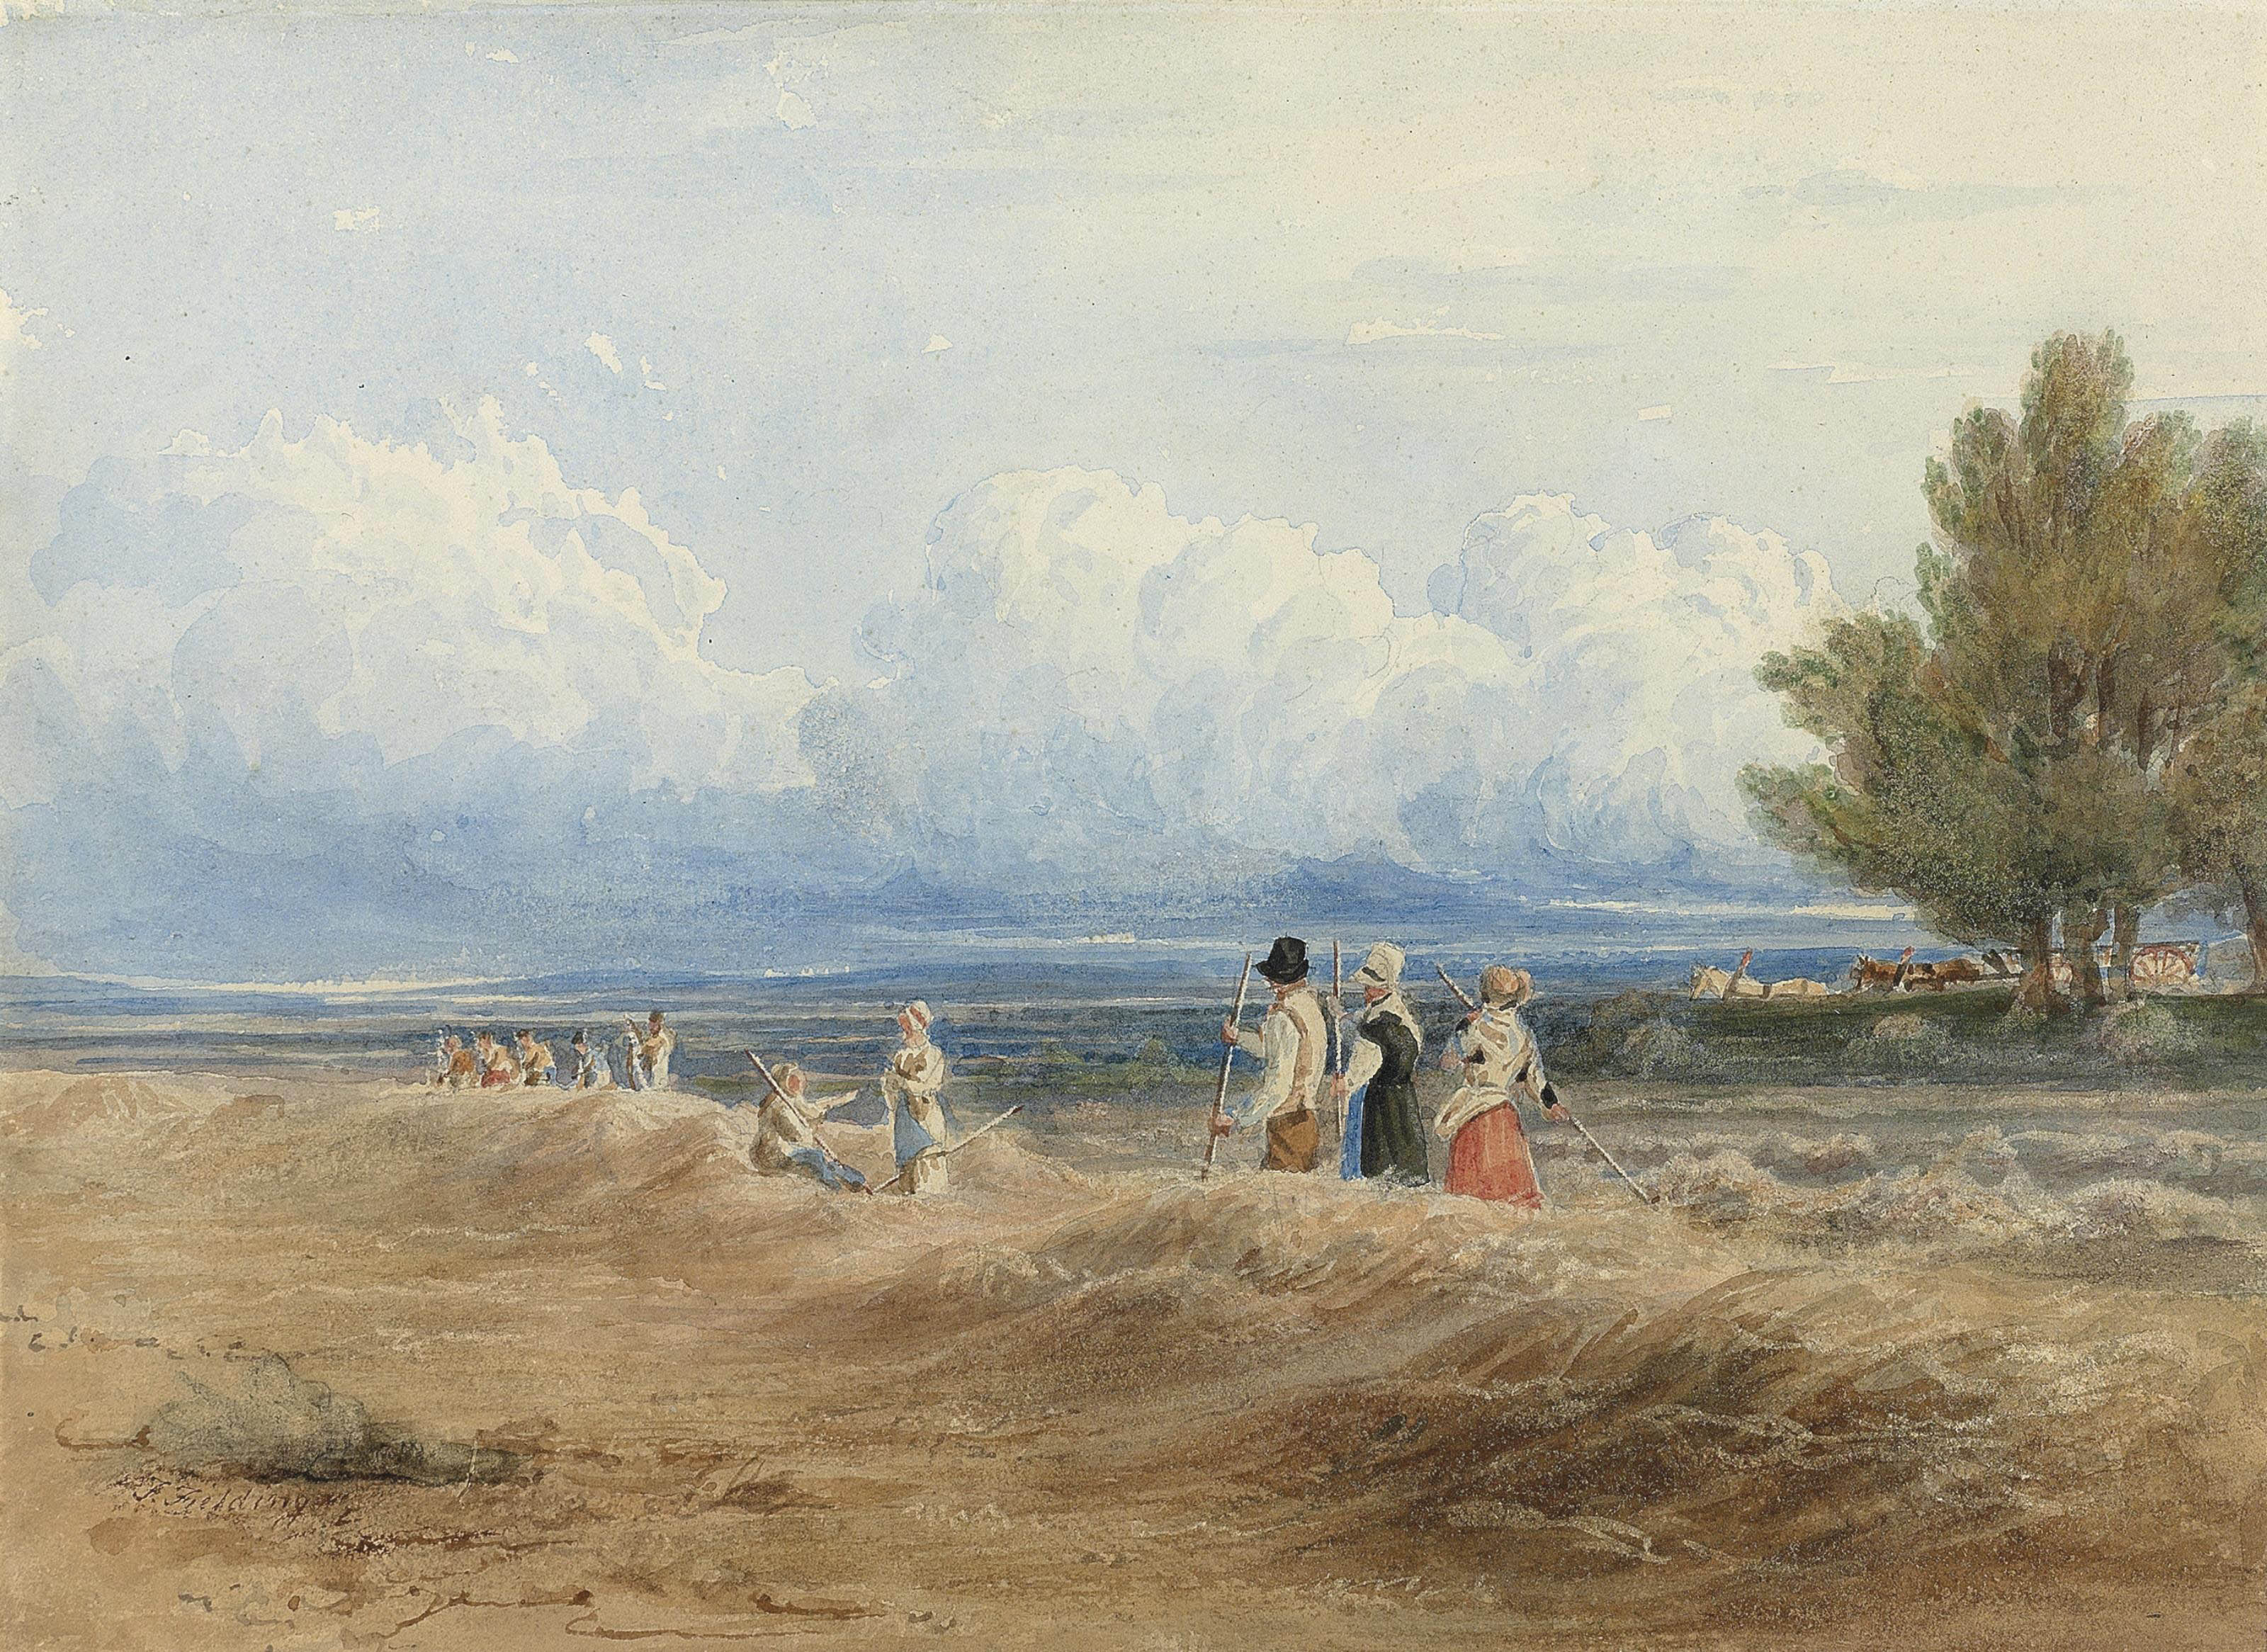 Gleaners at work on a windy summer's day